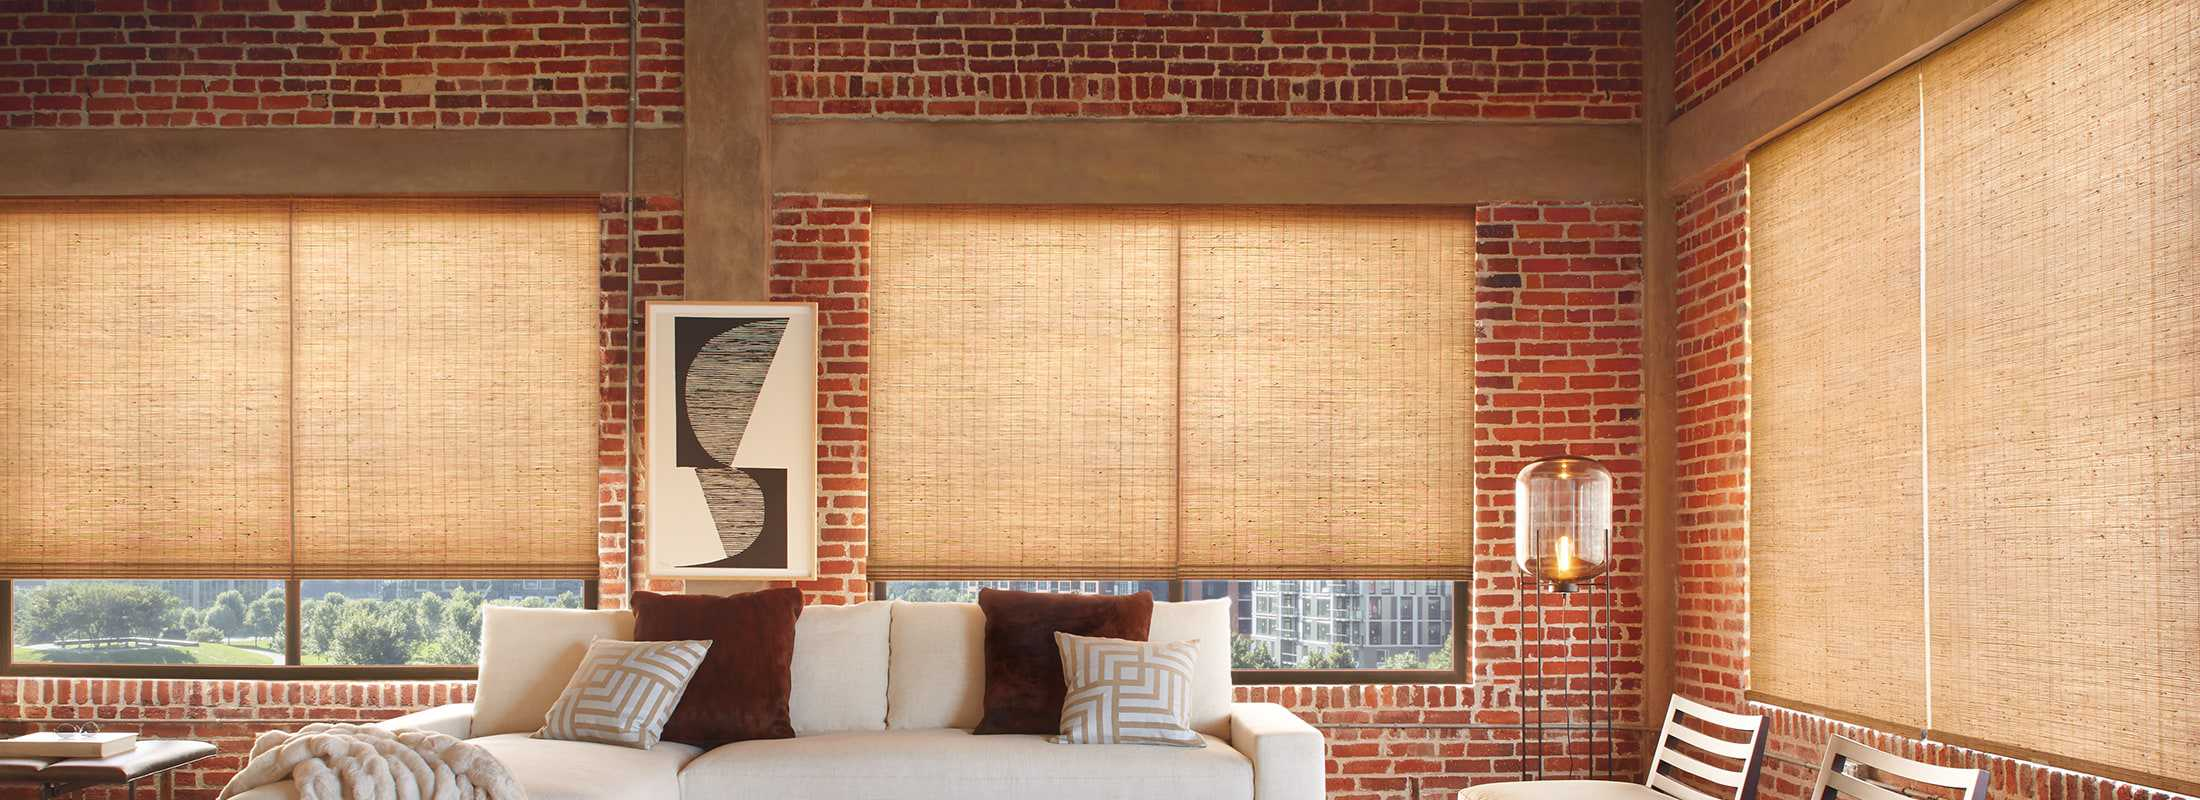 shades-of-wood-provenance-in-jute-forest-pecan